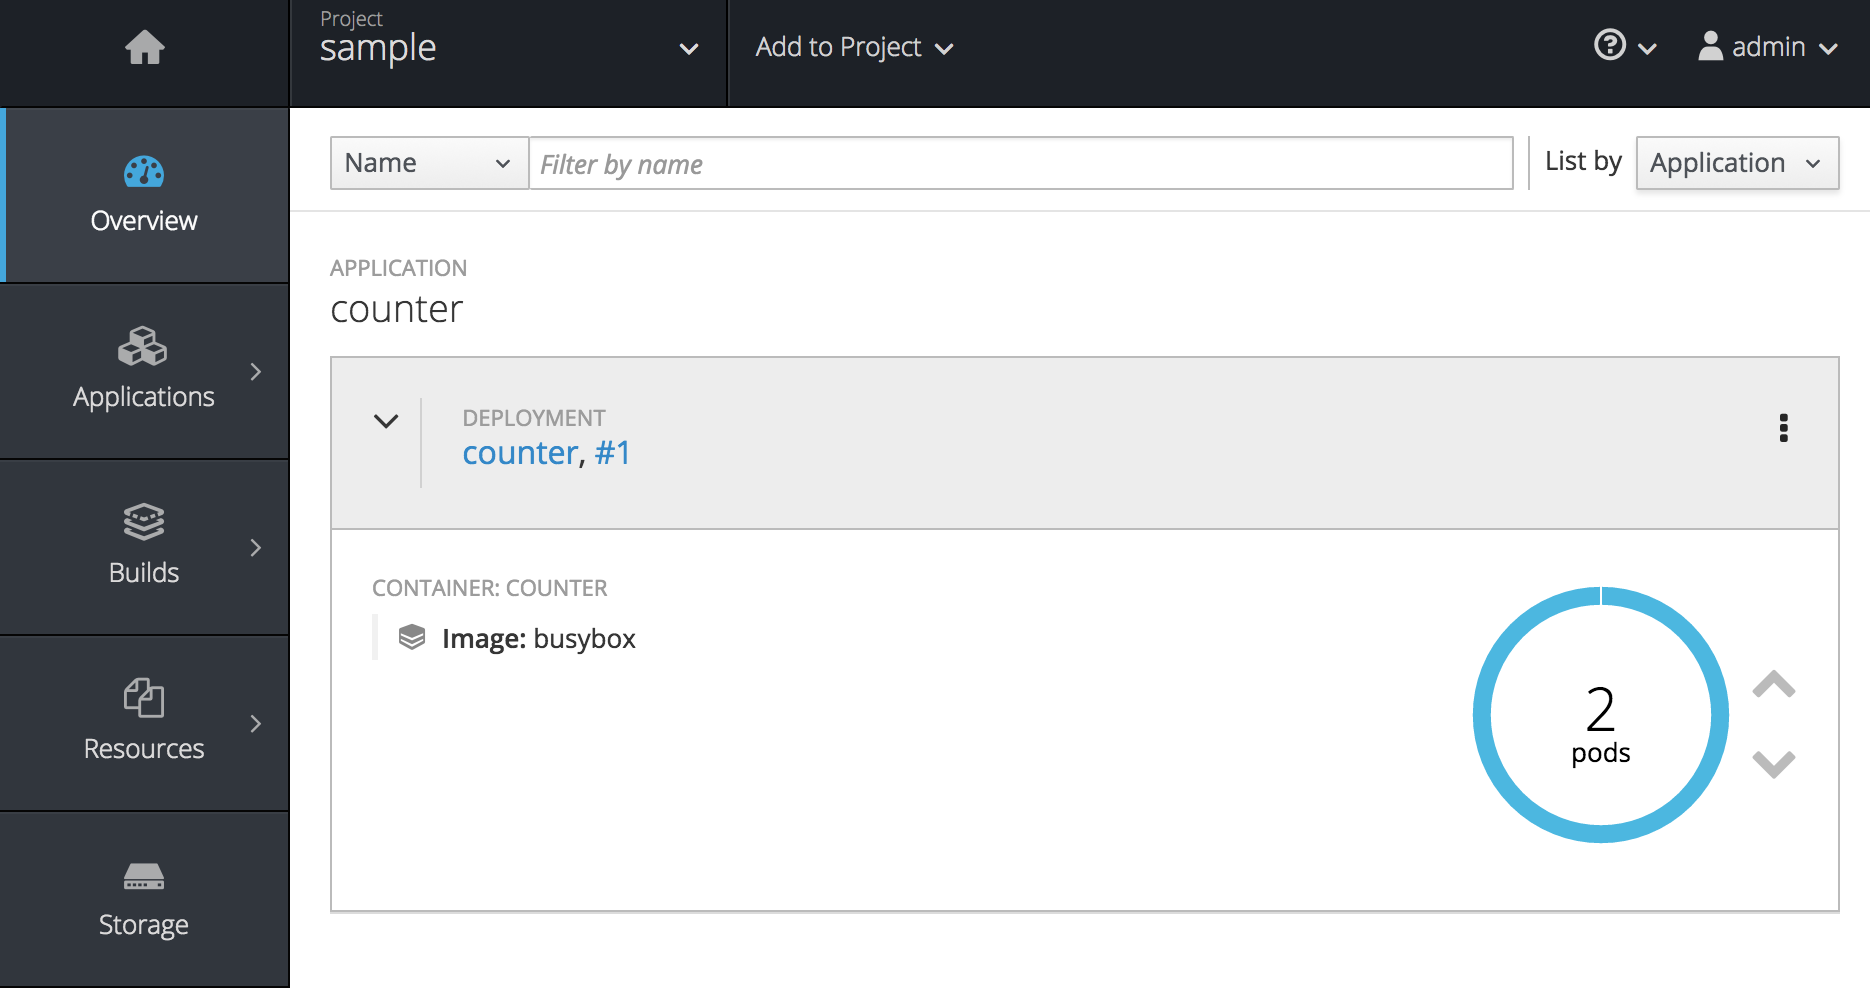 Integrating OpenShift and Splunk for Docker Container